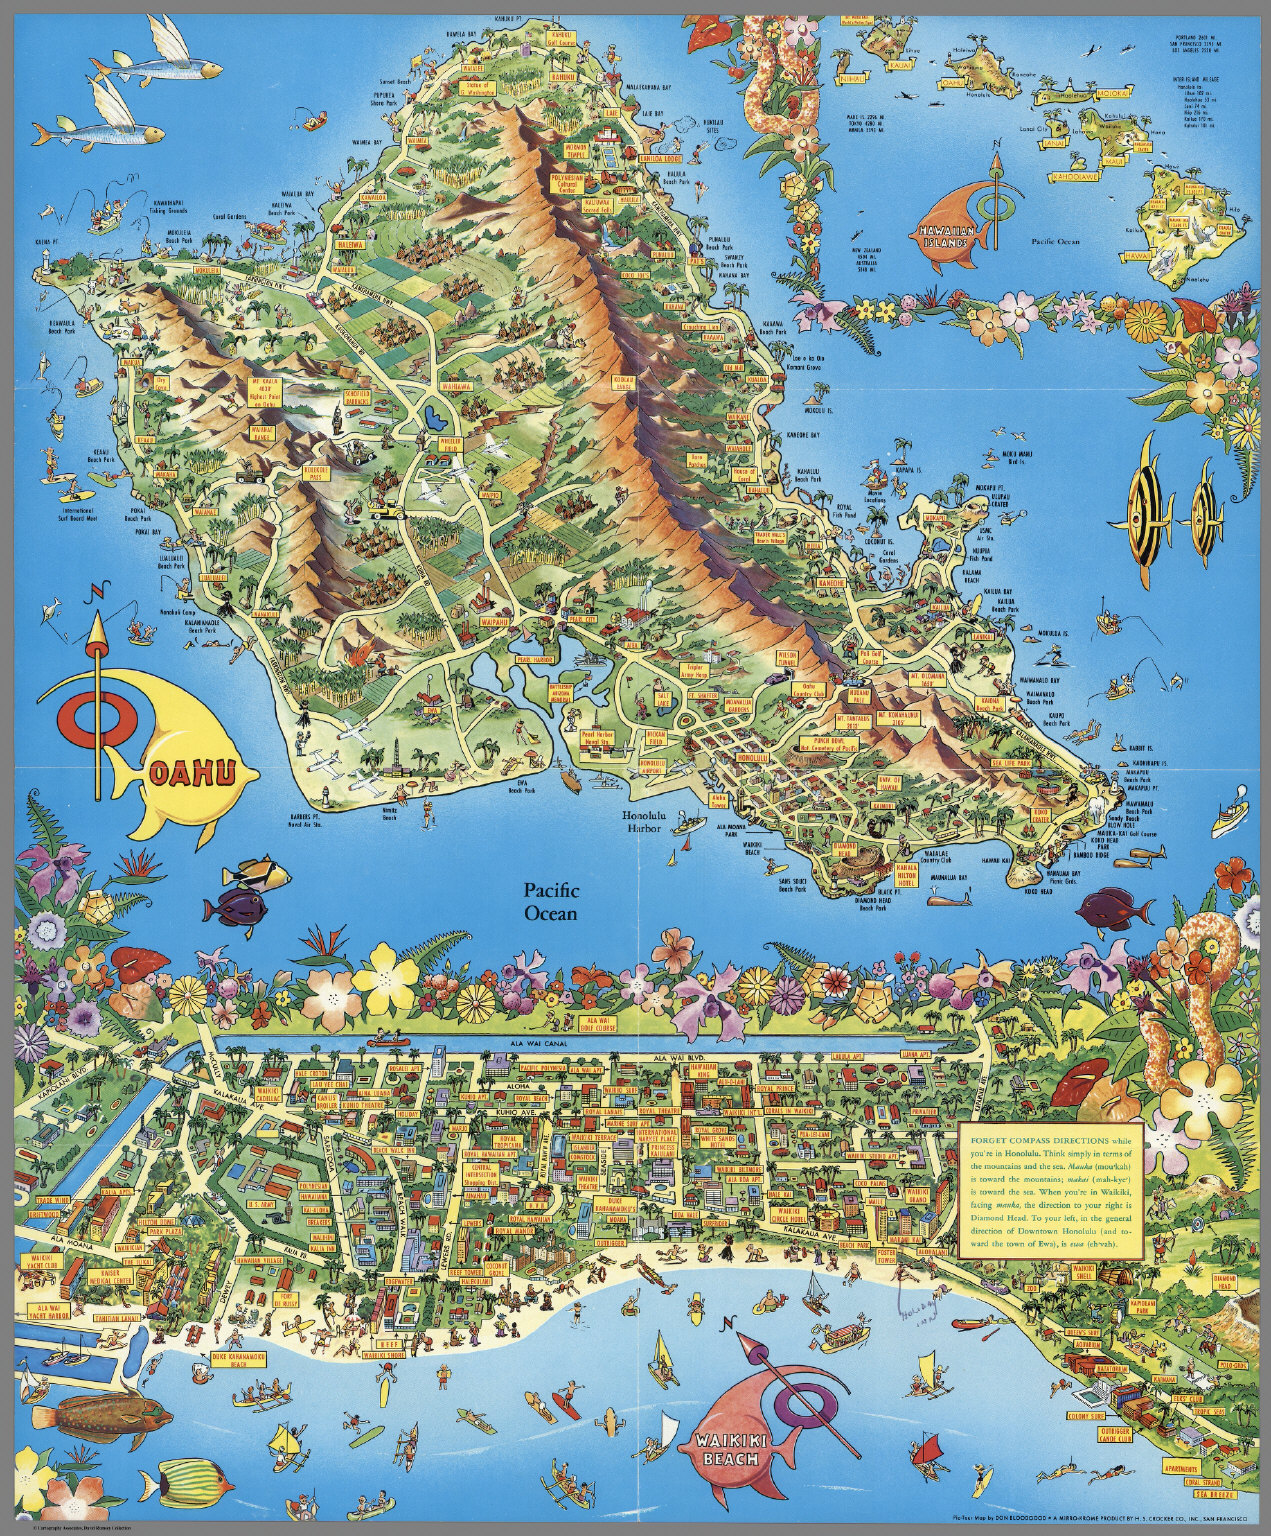 A PicTour Map Honolulu Waikiki And Round The Isle Of Oahu - Jo mora los angeles map